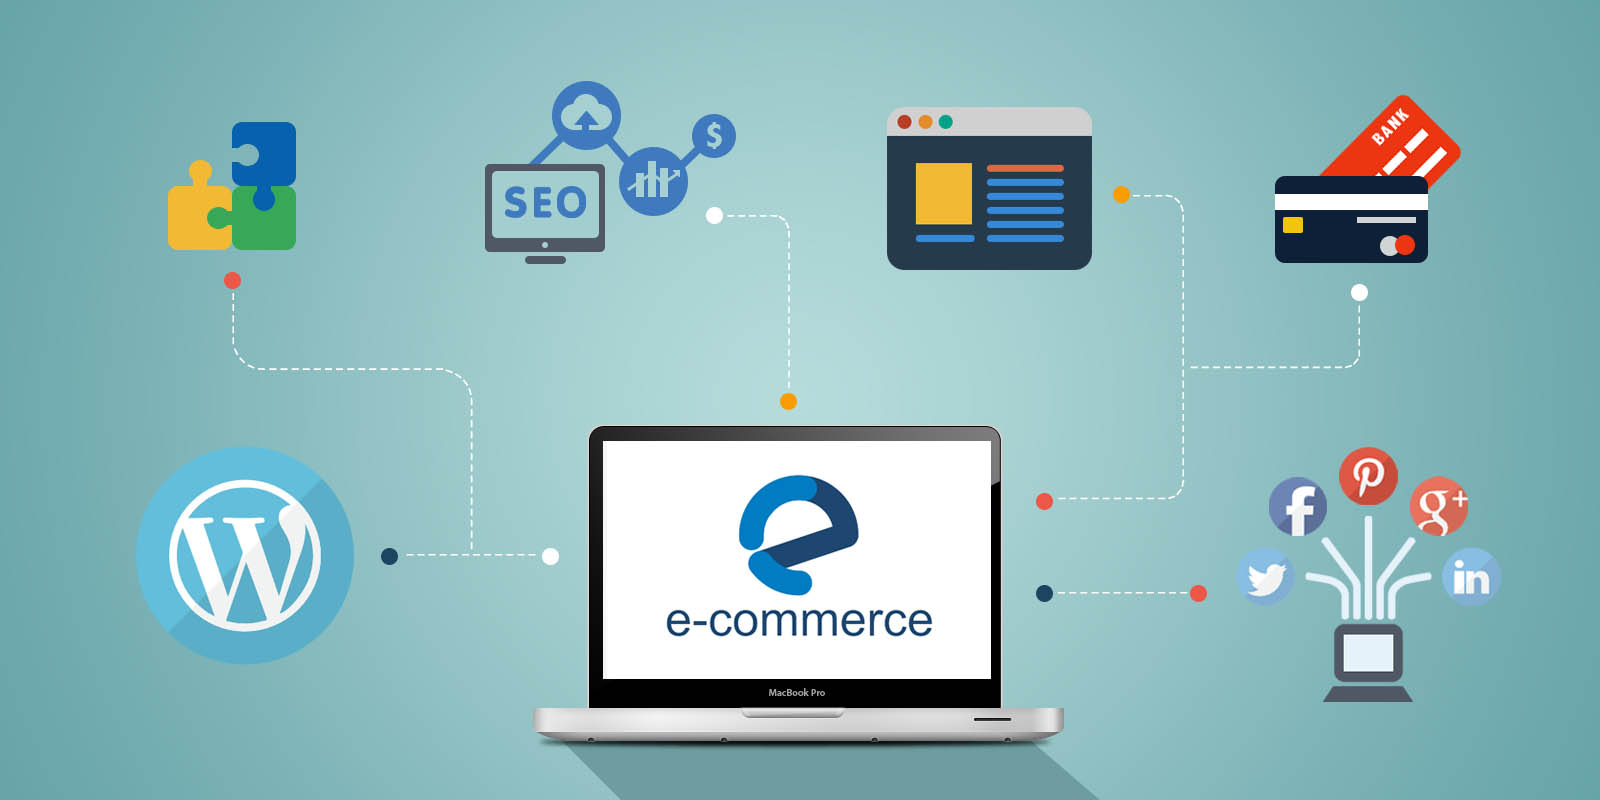 9 Factors to Consider when Building an E-commerce Website